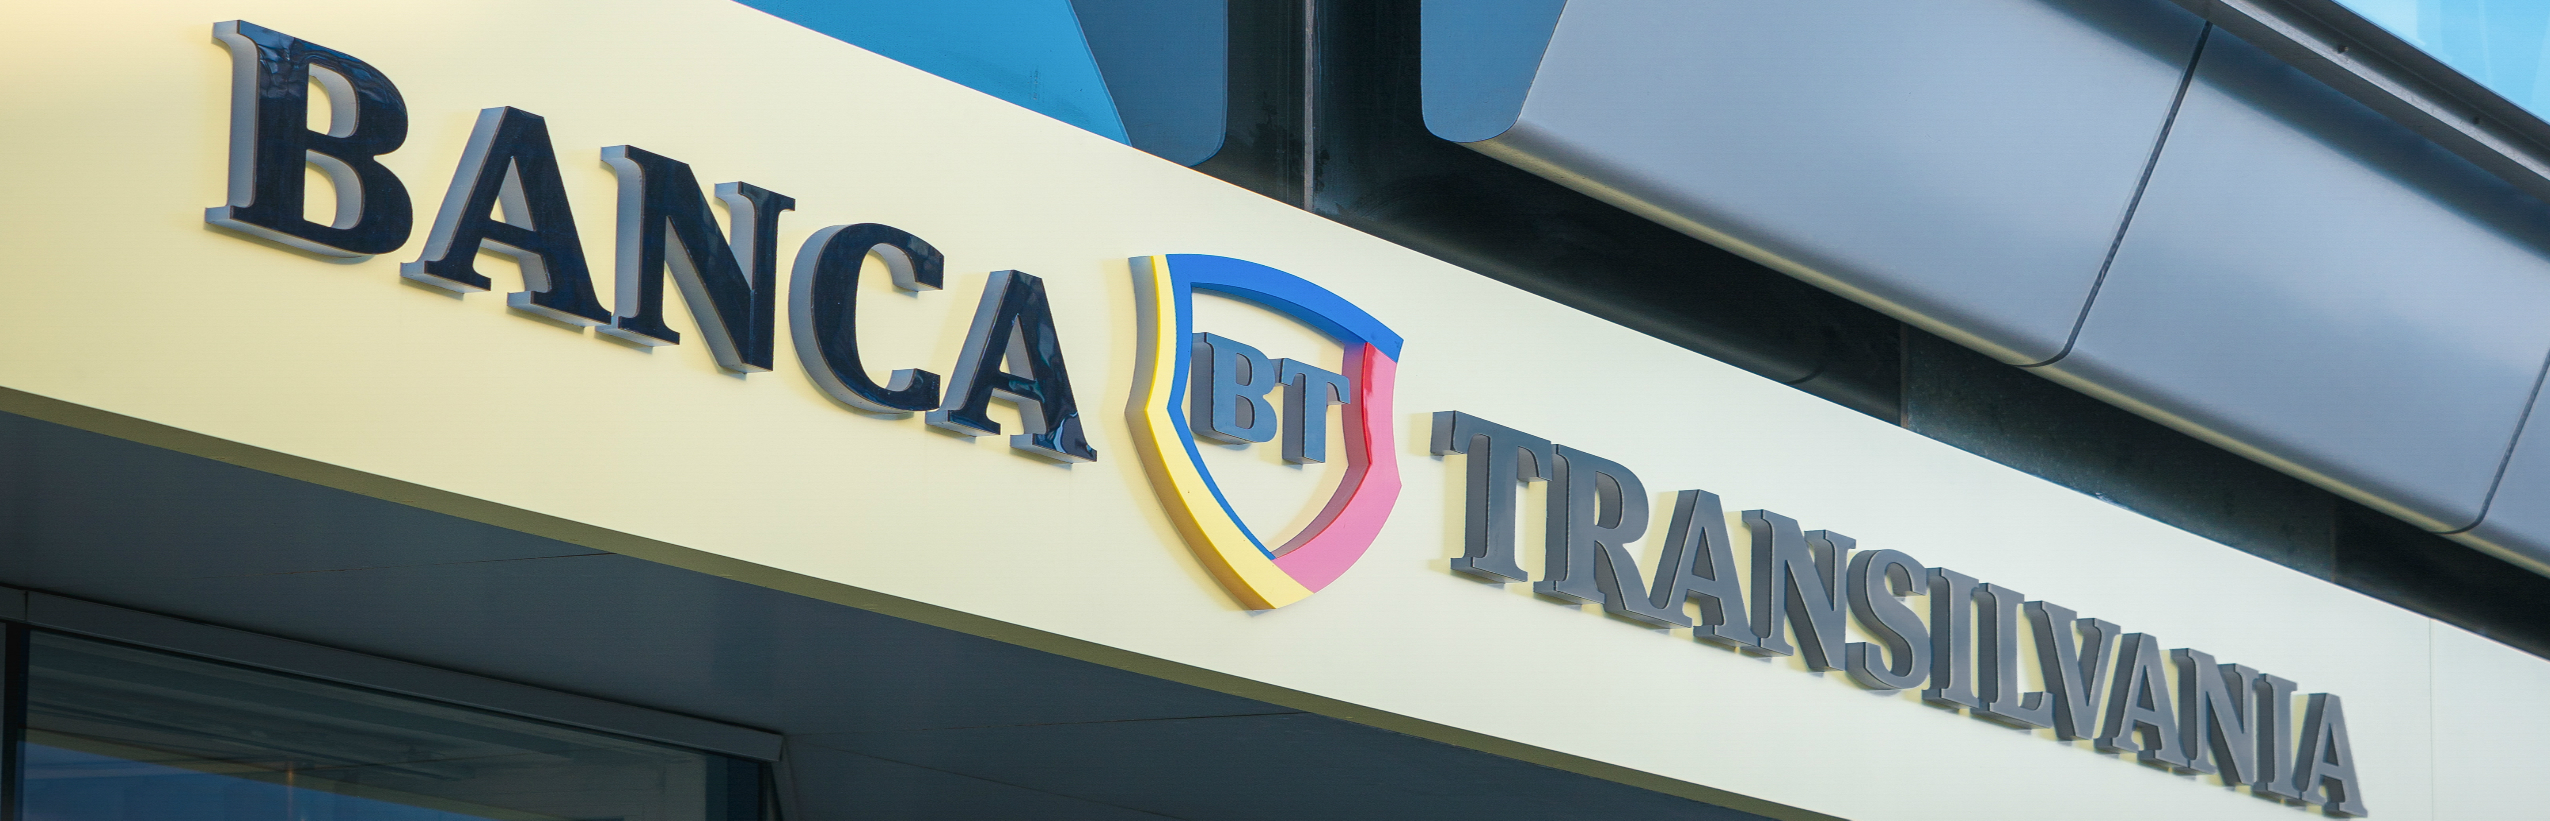 36.000 new loans granted by BT during the first three months of the year. Financial Results as at March 31, 2017